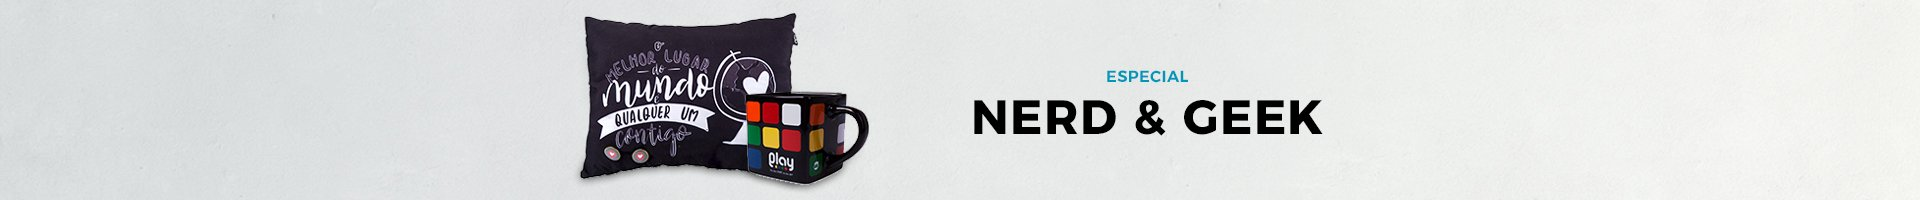 CATALOGO NERD GEEK